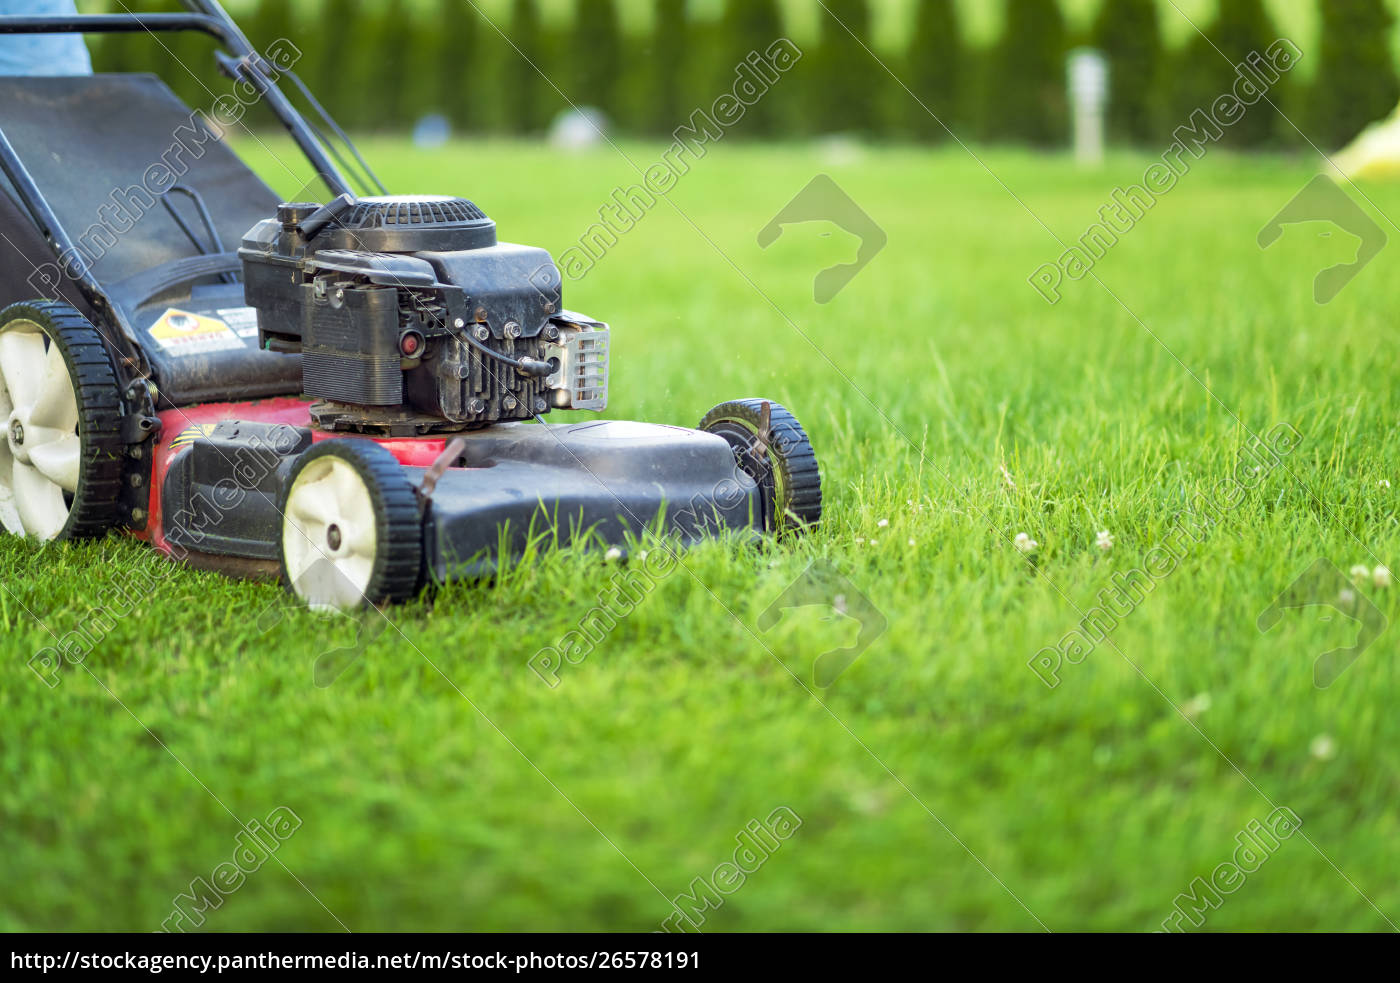 Lawn Mower Cutting Green Grass Royalty Free Image 26578191 Panthermedia Stock Agency